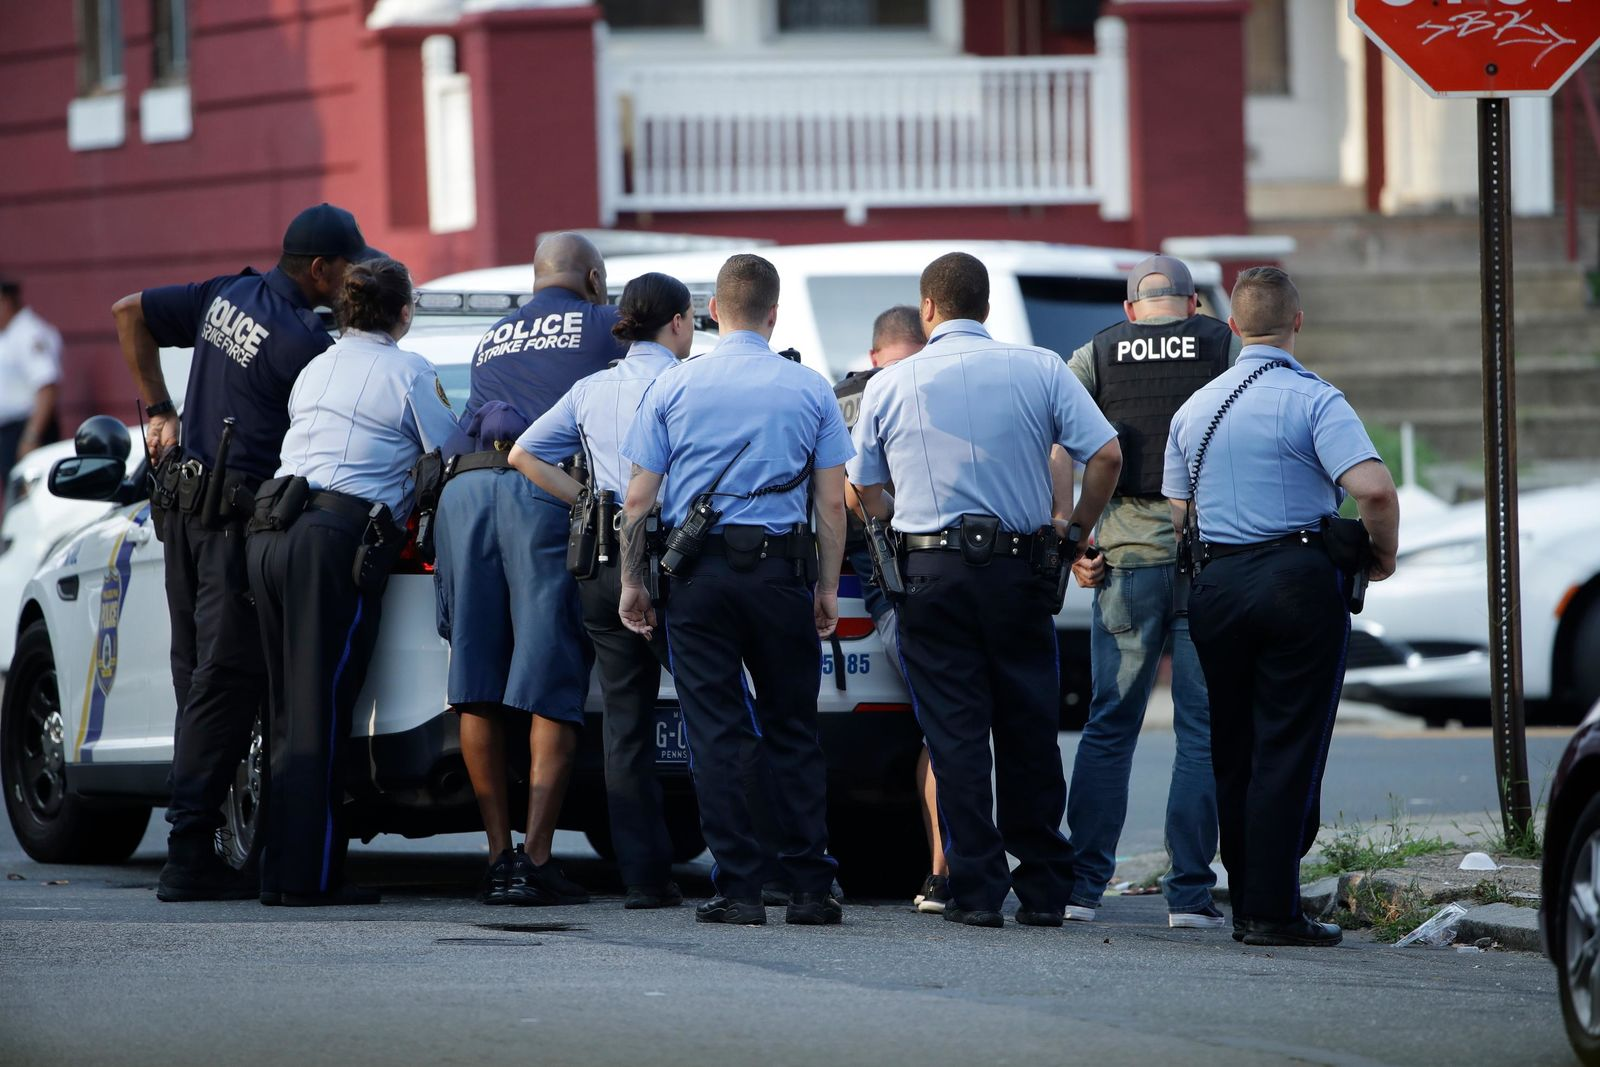 Philadelphia police stage as they respond to an active shooting situation, Wednesday, Aug. 14, 2019, in the Nicetown neighborhood of Philadelphia. (AP Photo/Matt Rourke)